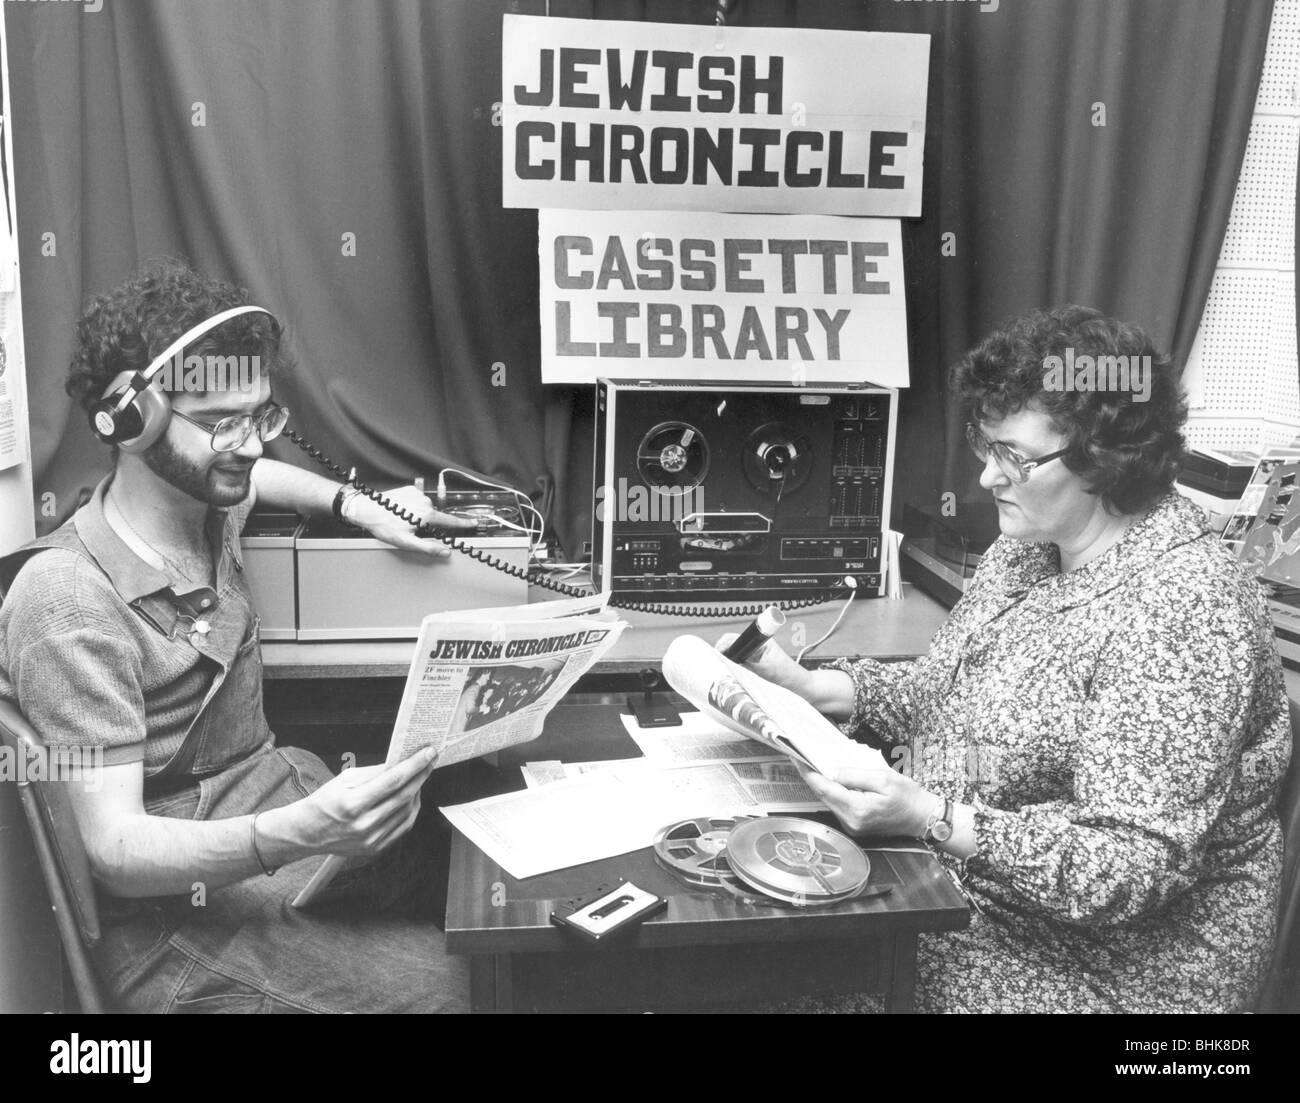 Recording the Jewish Chronicle cassette for the Jewish Blind Society, London, 1980. Artist: Sidney Harris - Stock Image